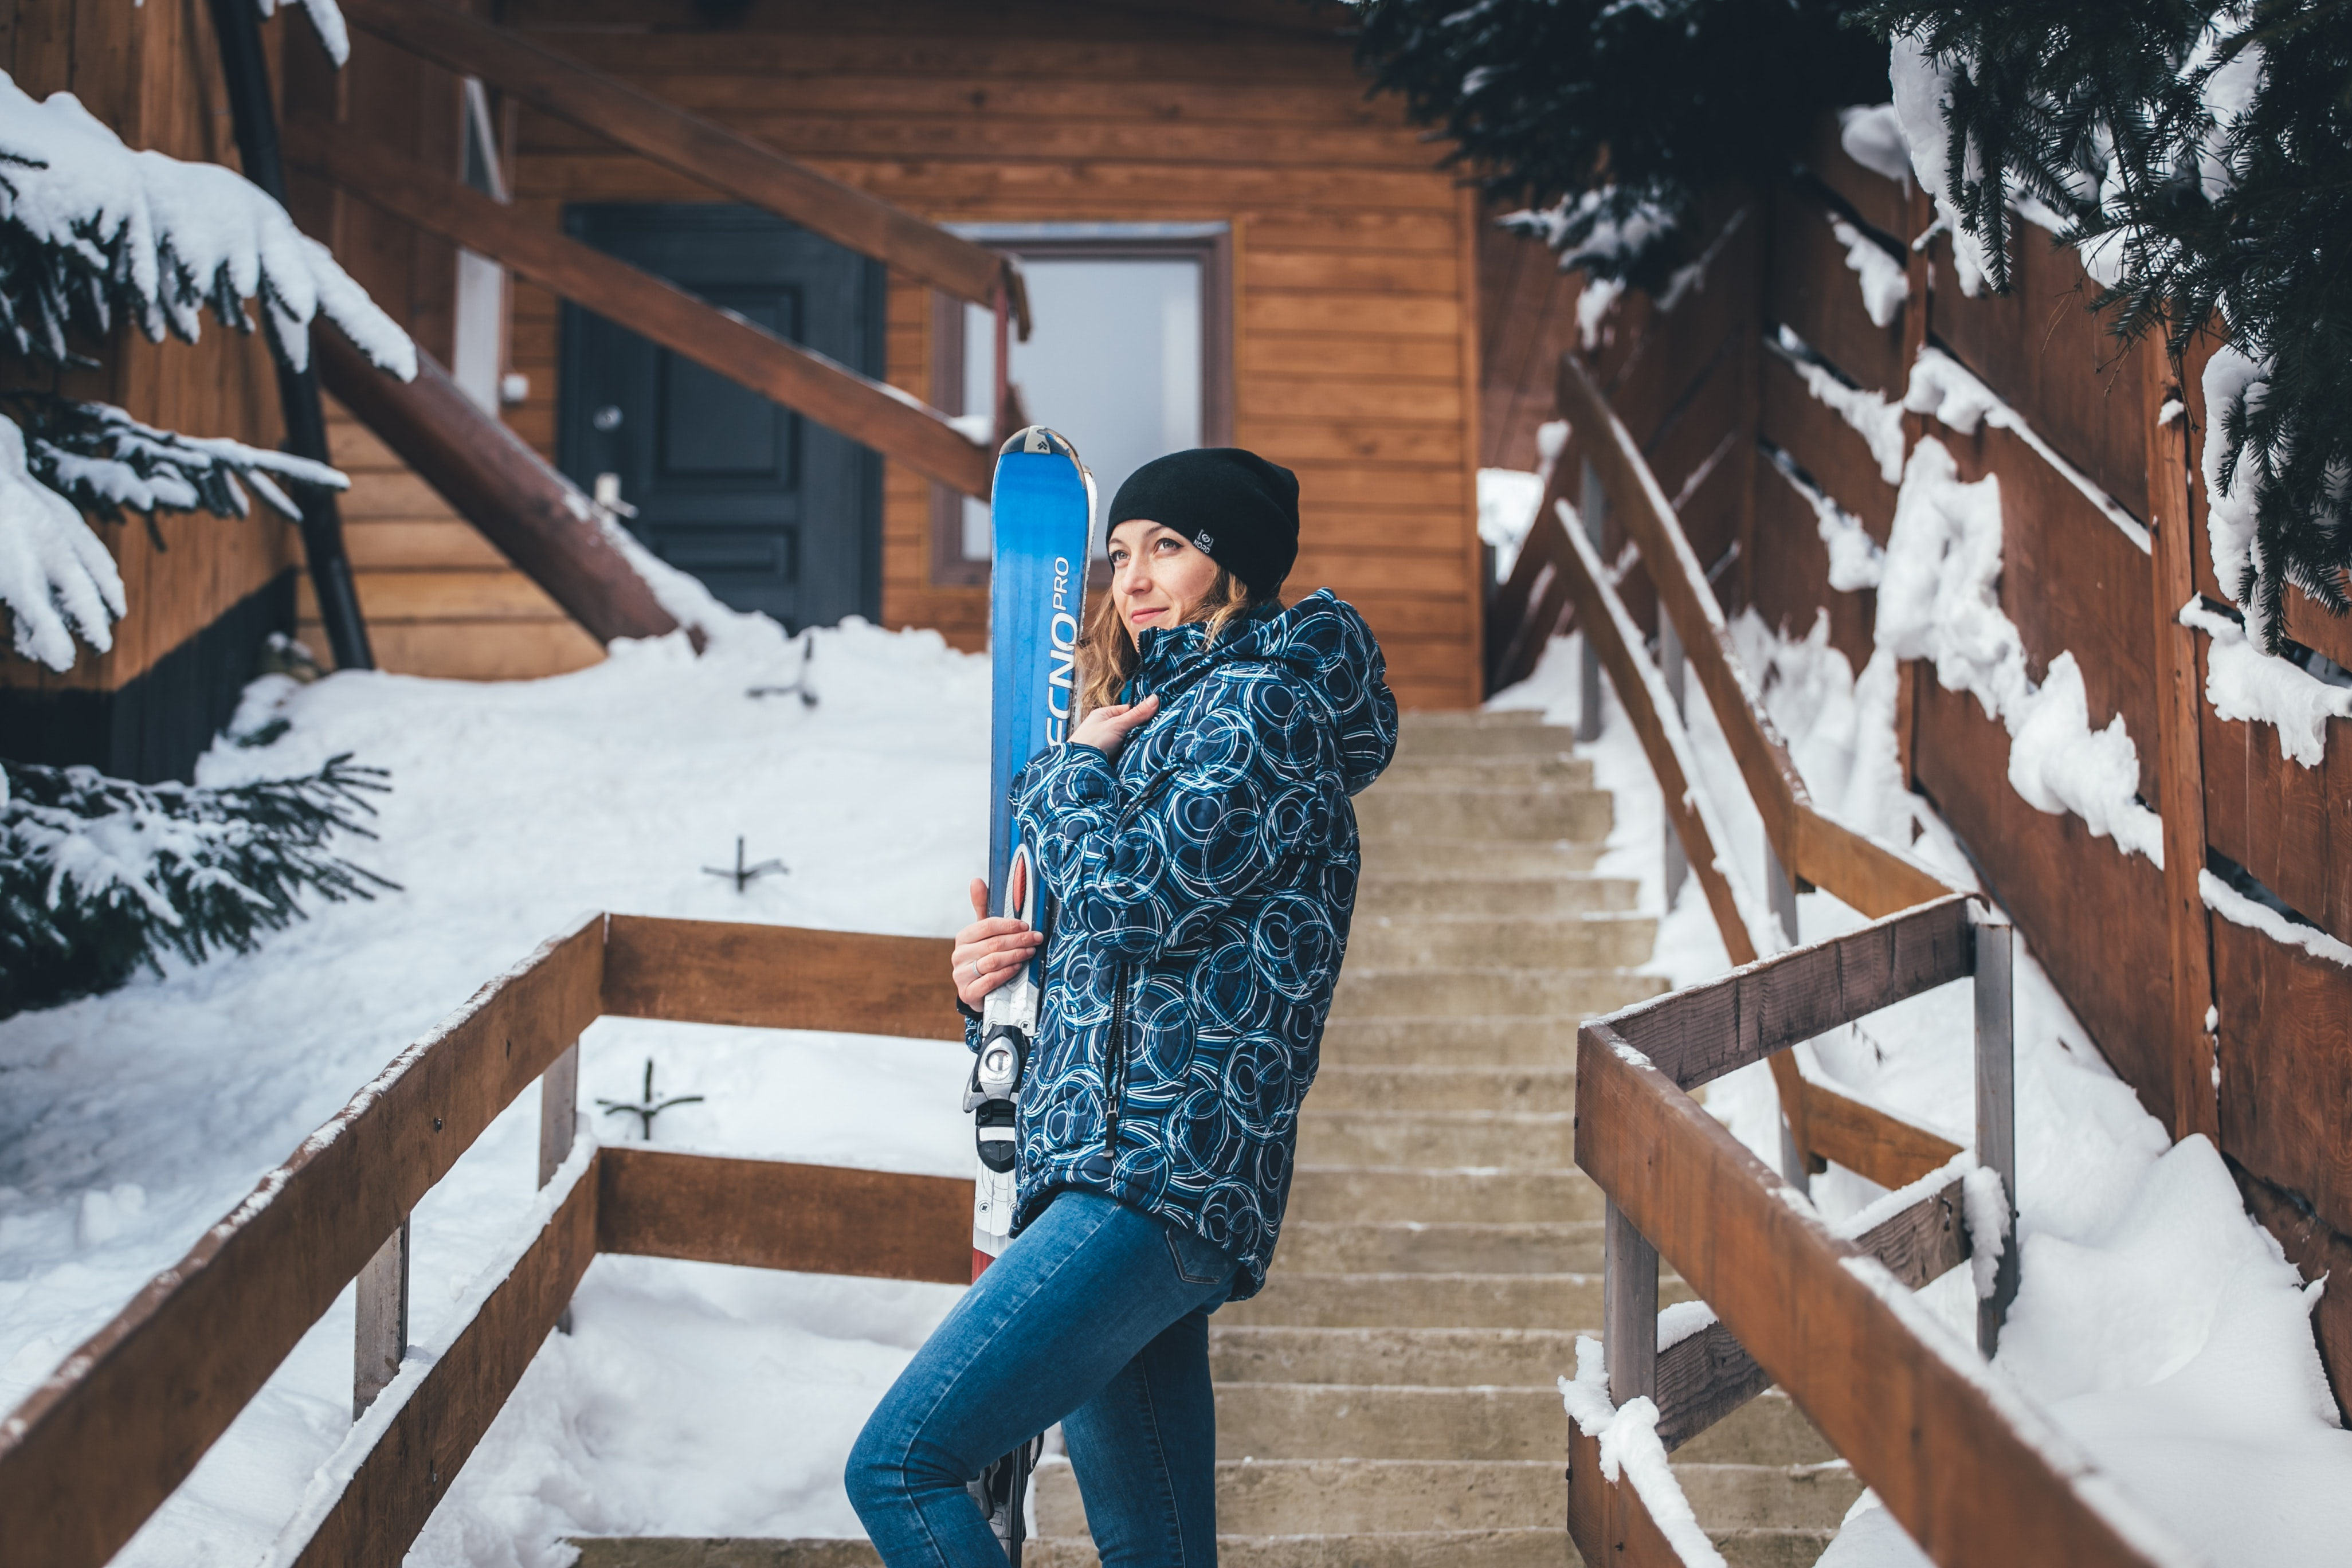 A girl skier standing by a log cabin